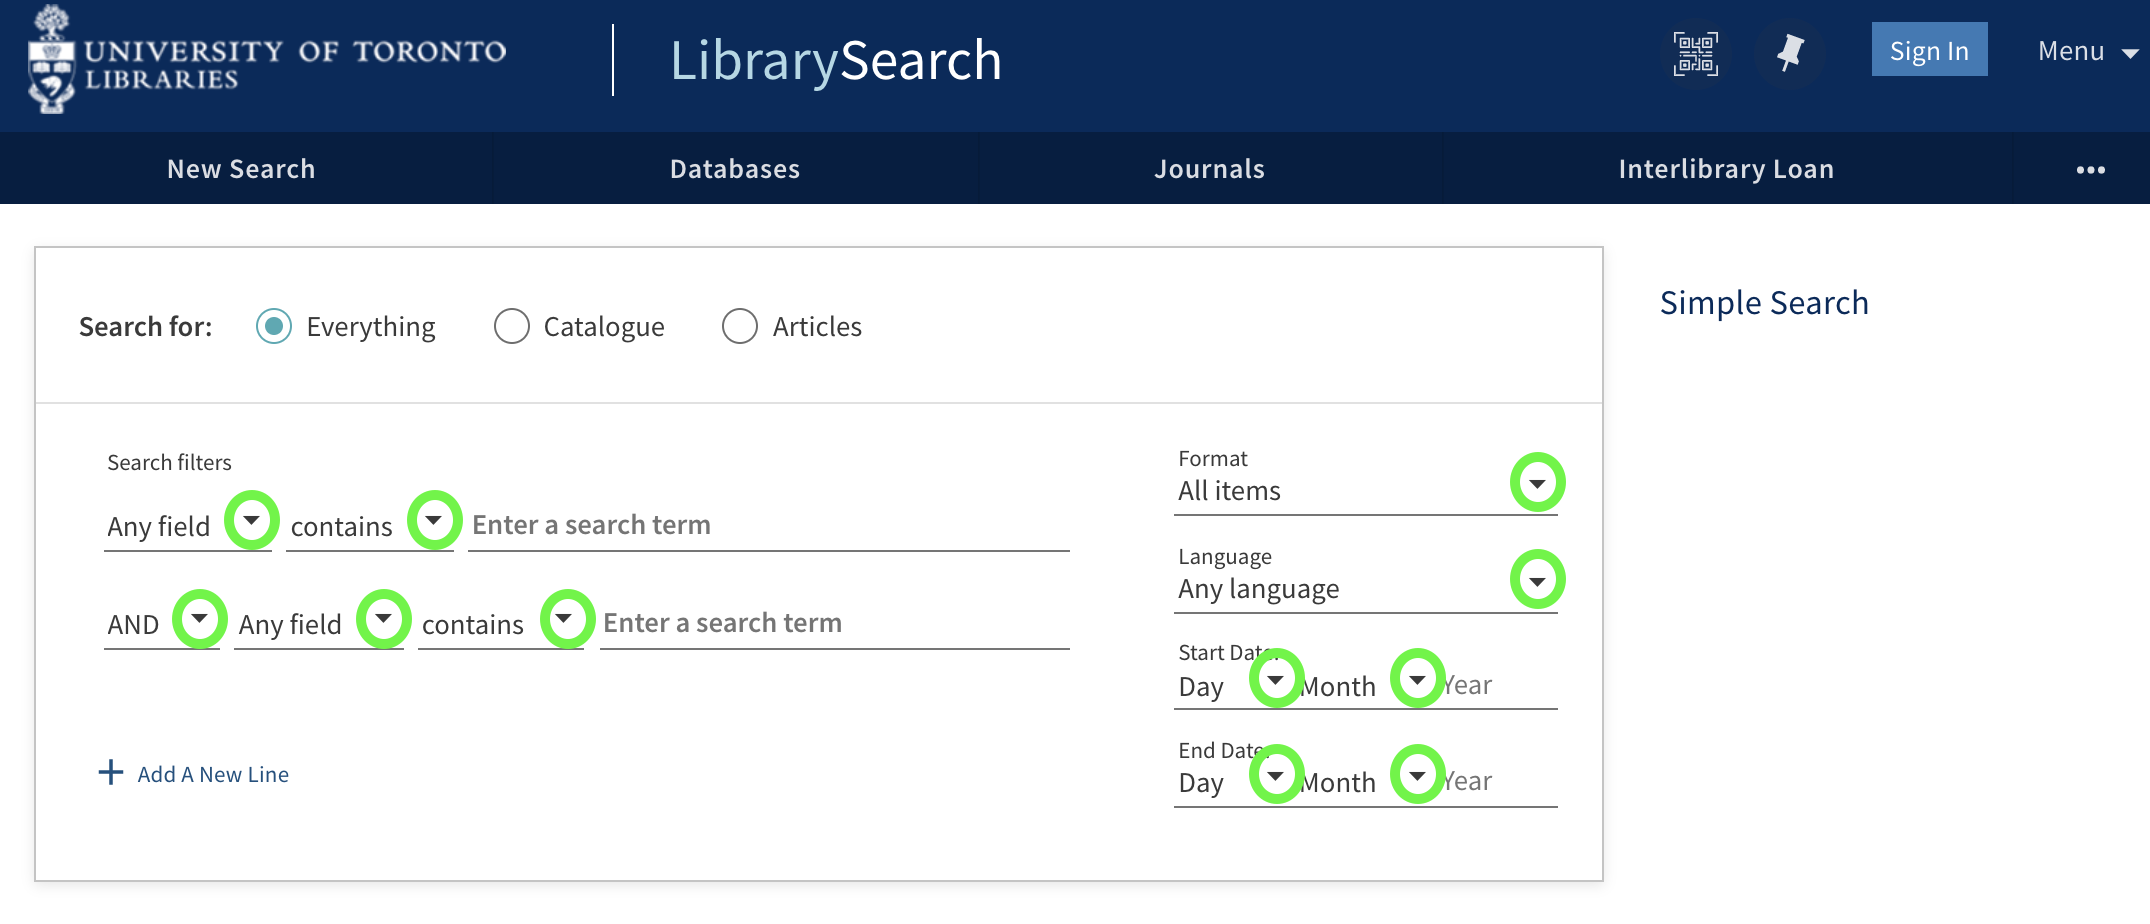 Advanced search interface highlighting where drop-down menus can be accessed.